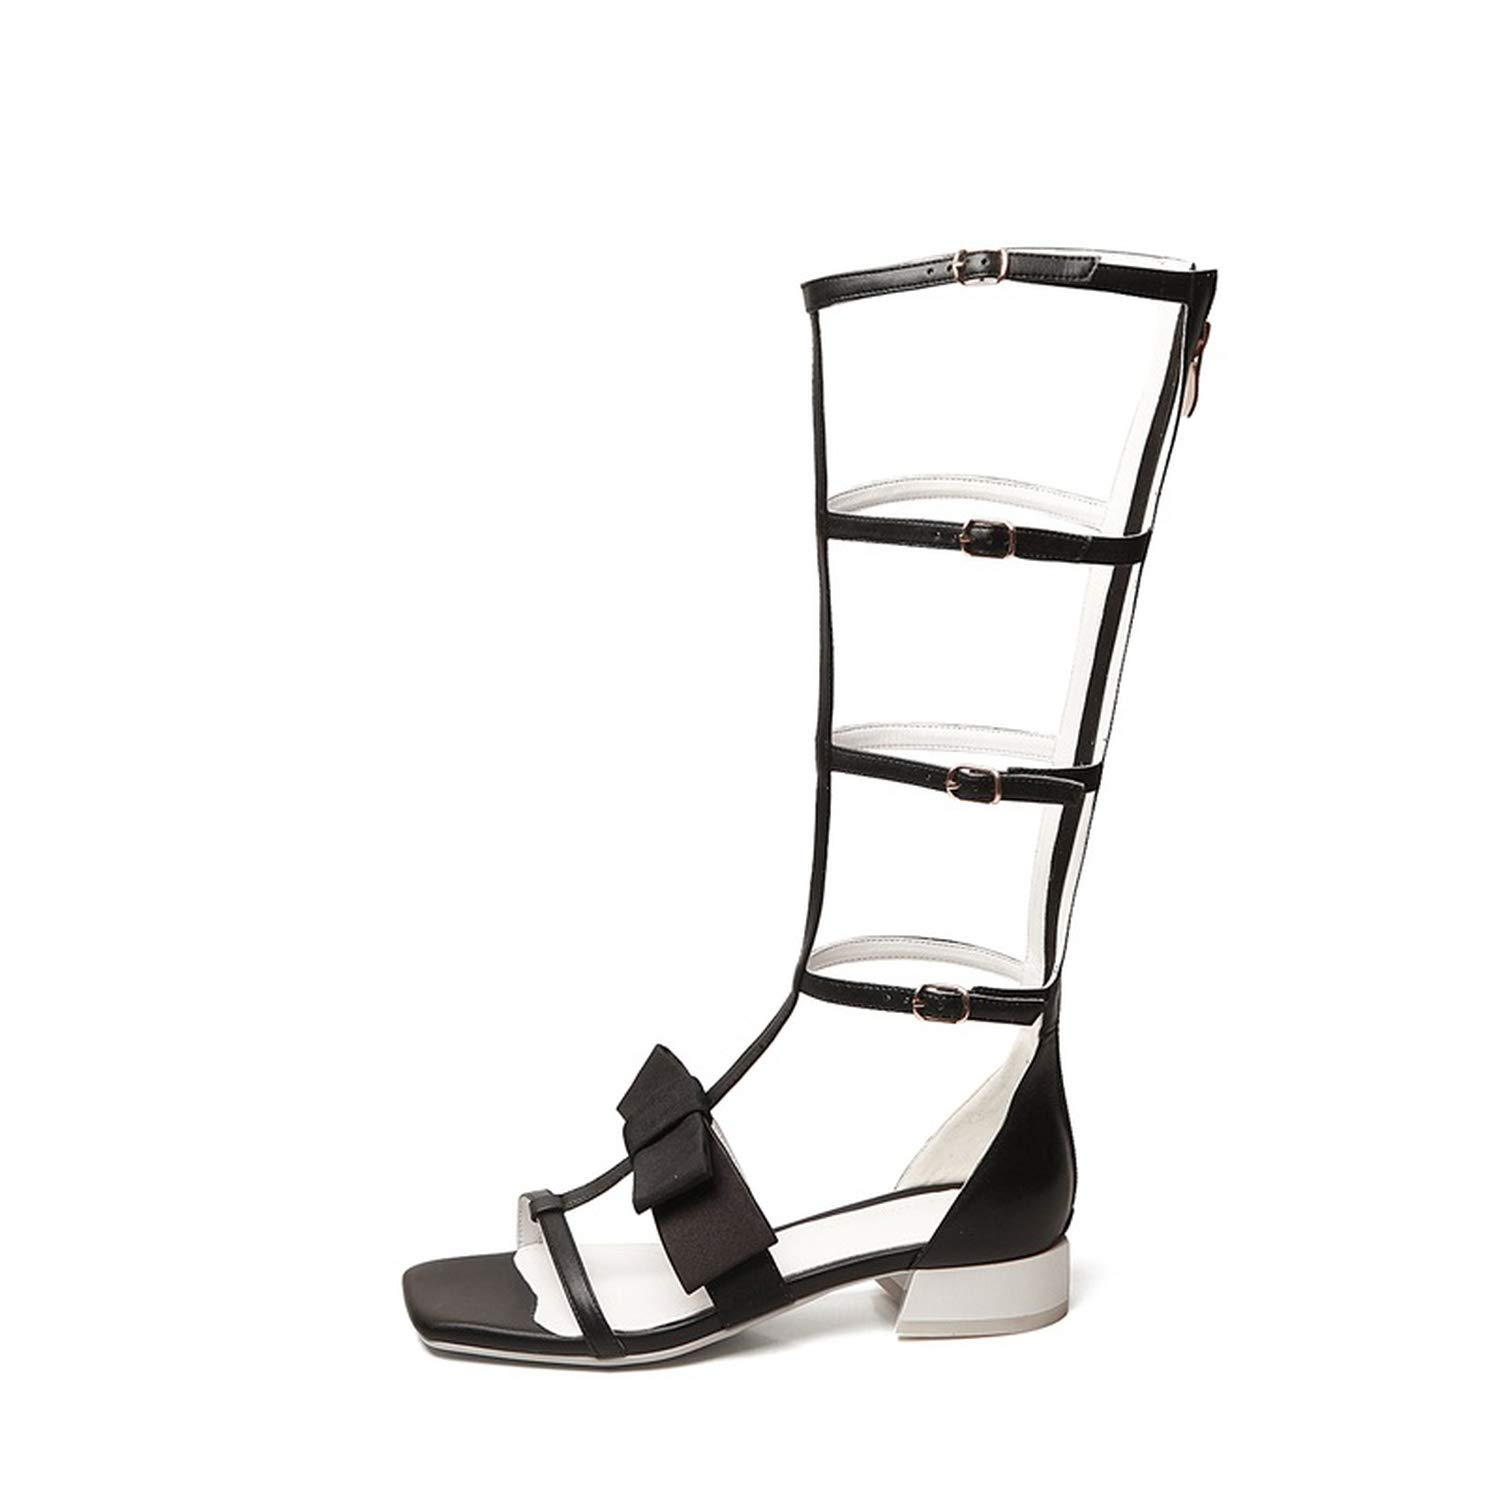 2019 Genuine Leather Gladiator Sandals Women Shoes Buckle Solid Color Ladies Shoes Knee high Sandals